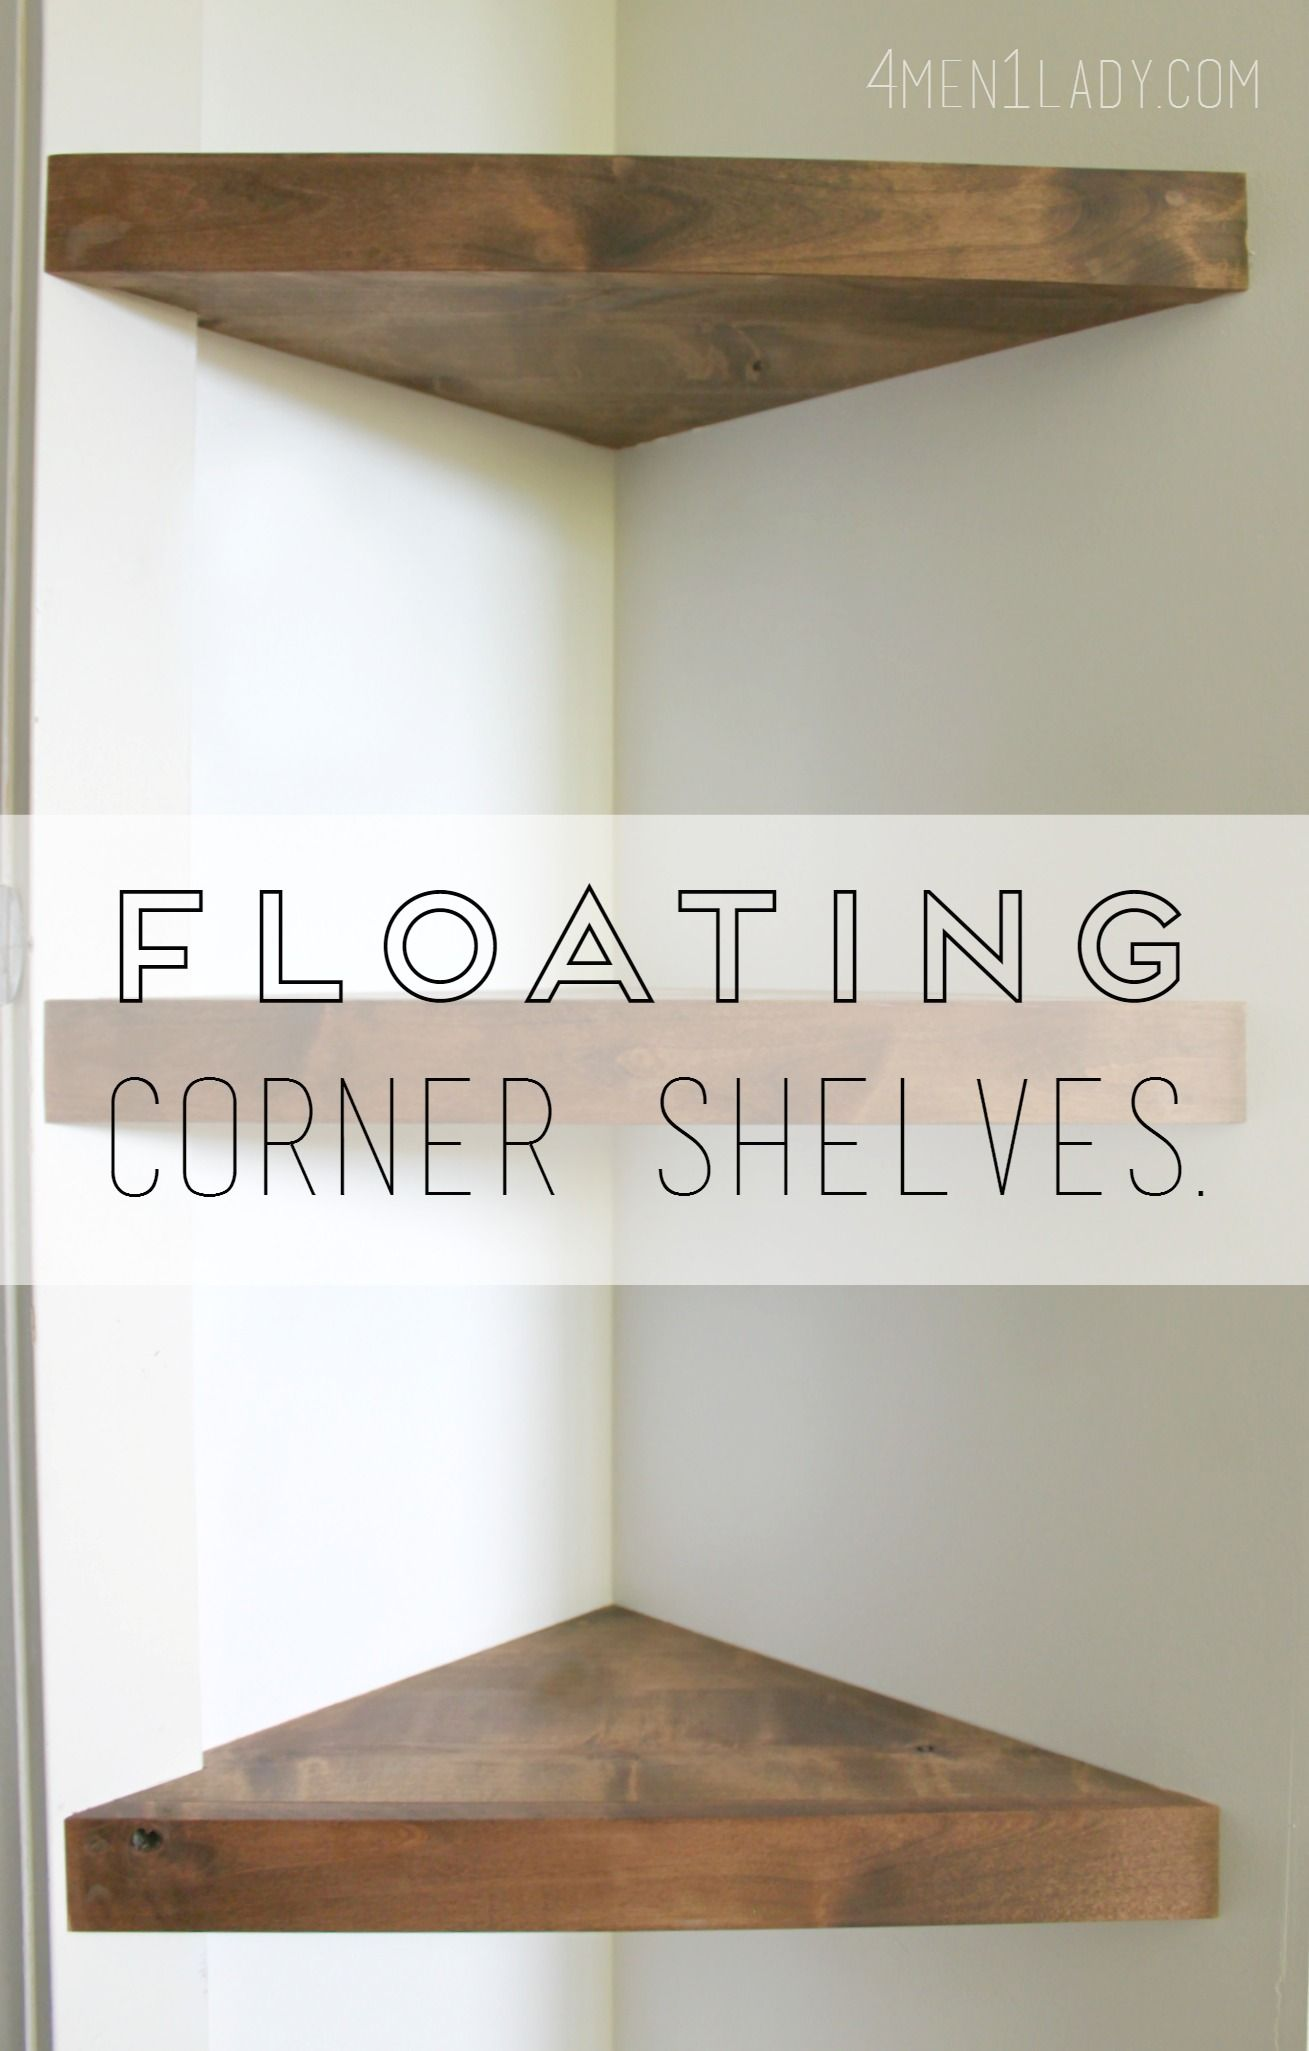 brilliantly creative diy shelving ideas apartment fixes floating corner shelf unit img shelves kitchen bedroom rustic tub shower combo double sink bathroom secret drawer desk